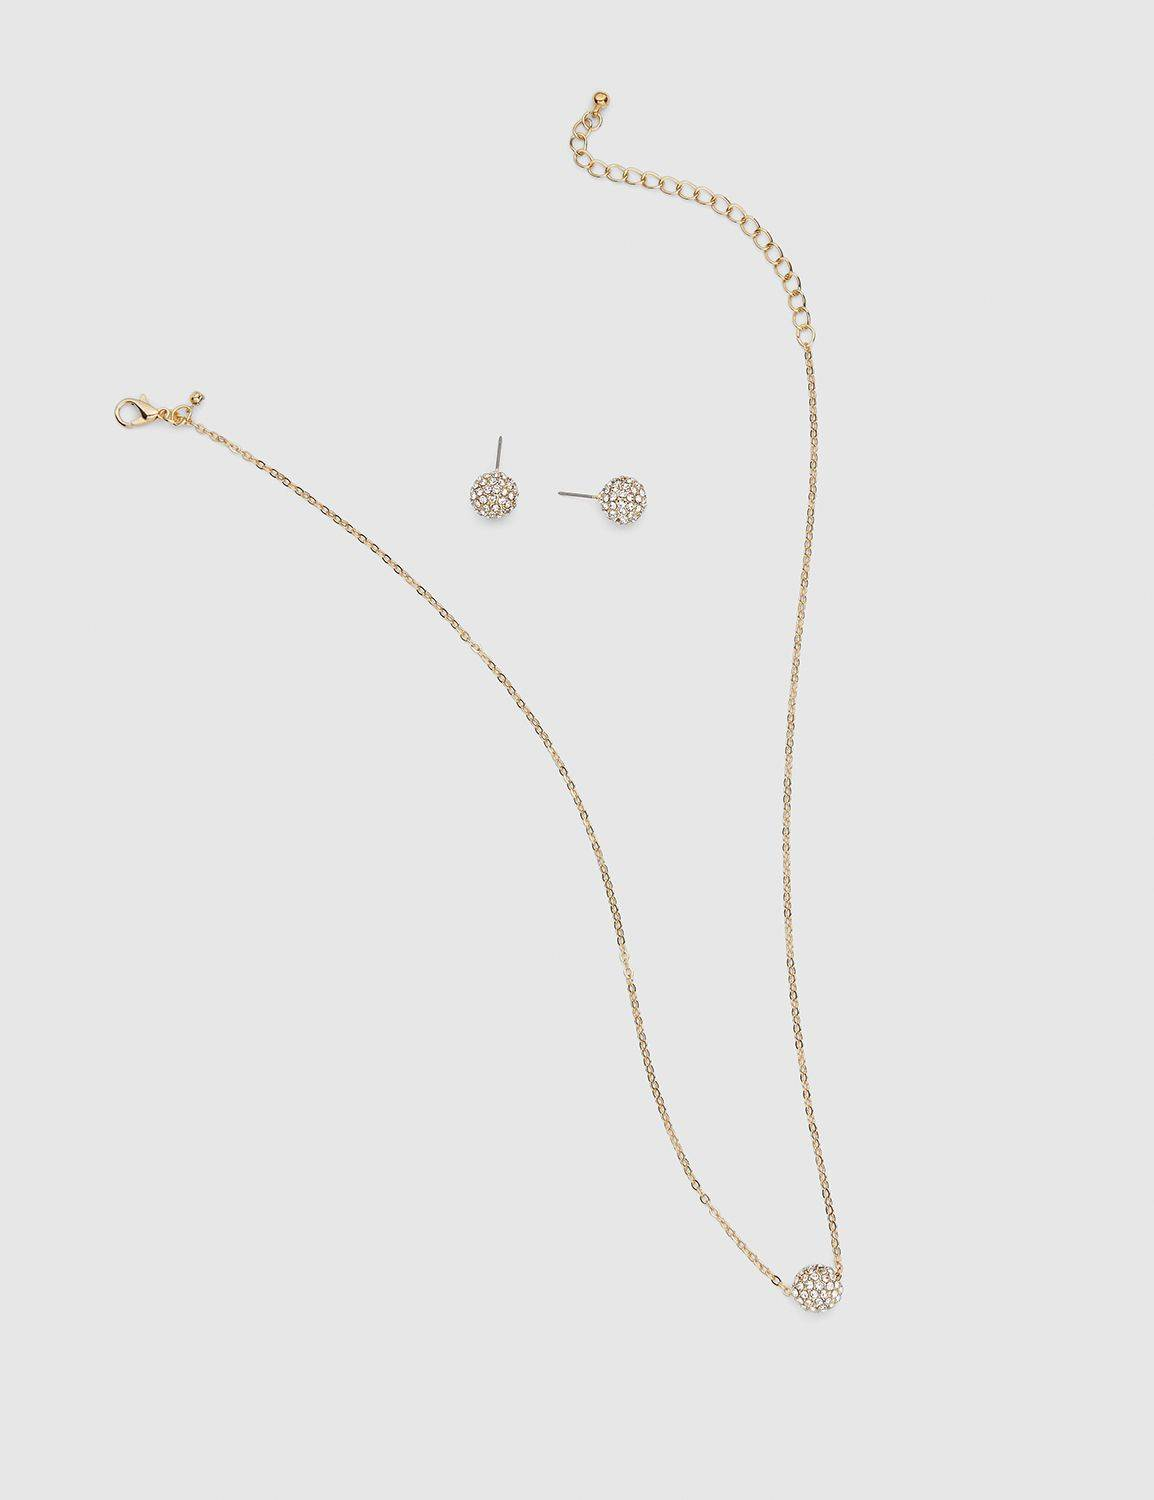 Lane Bryant Women's Fireball Earring & Necklace Set ONESZ Gold Tone